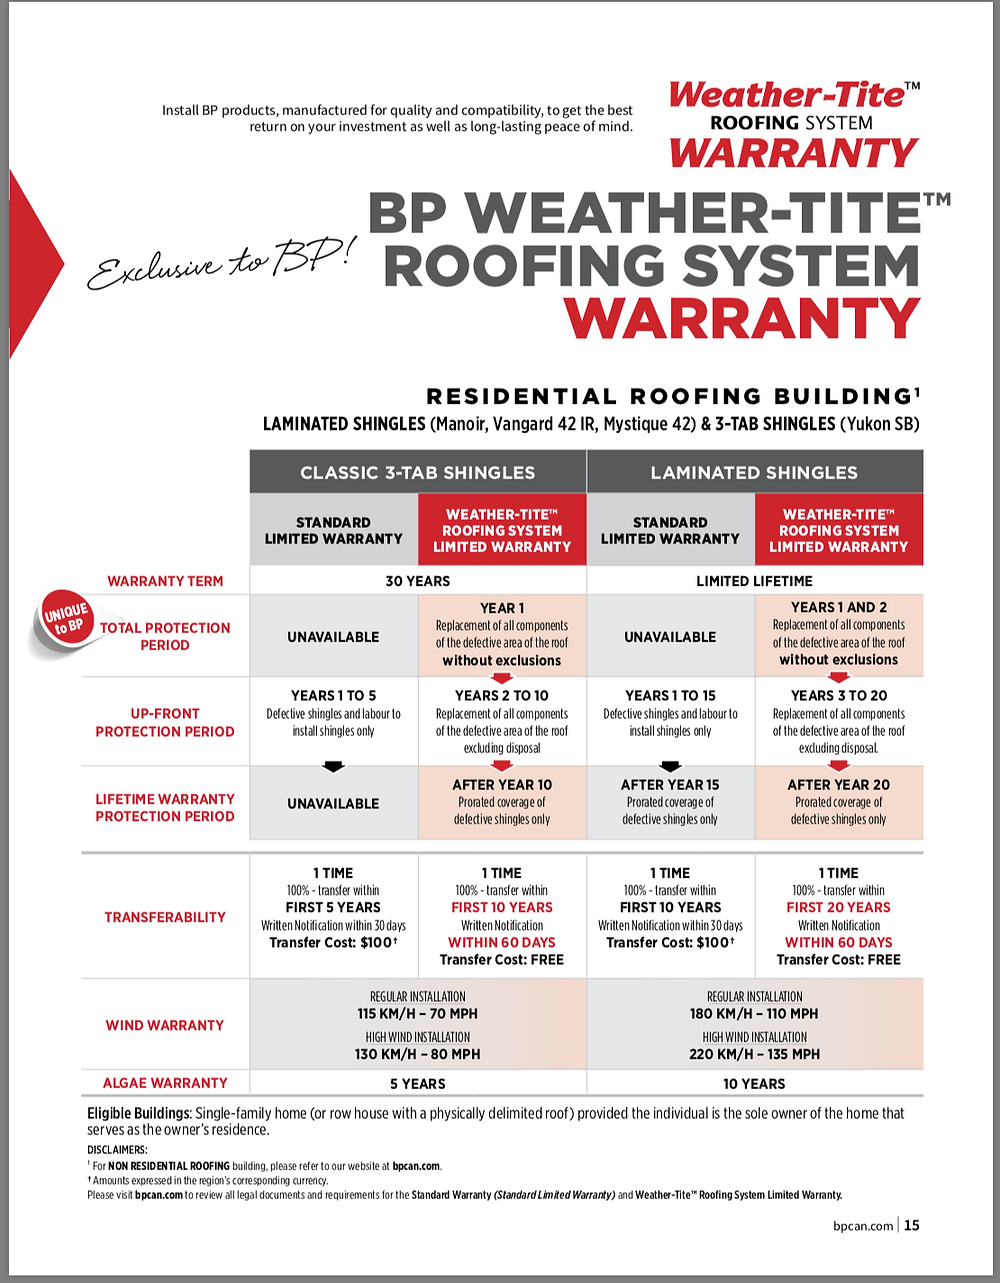 the B.P weather tite roofing system warranty